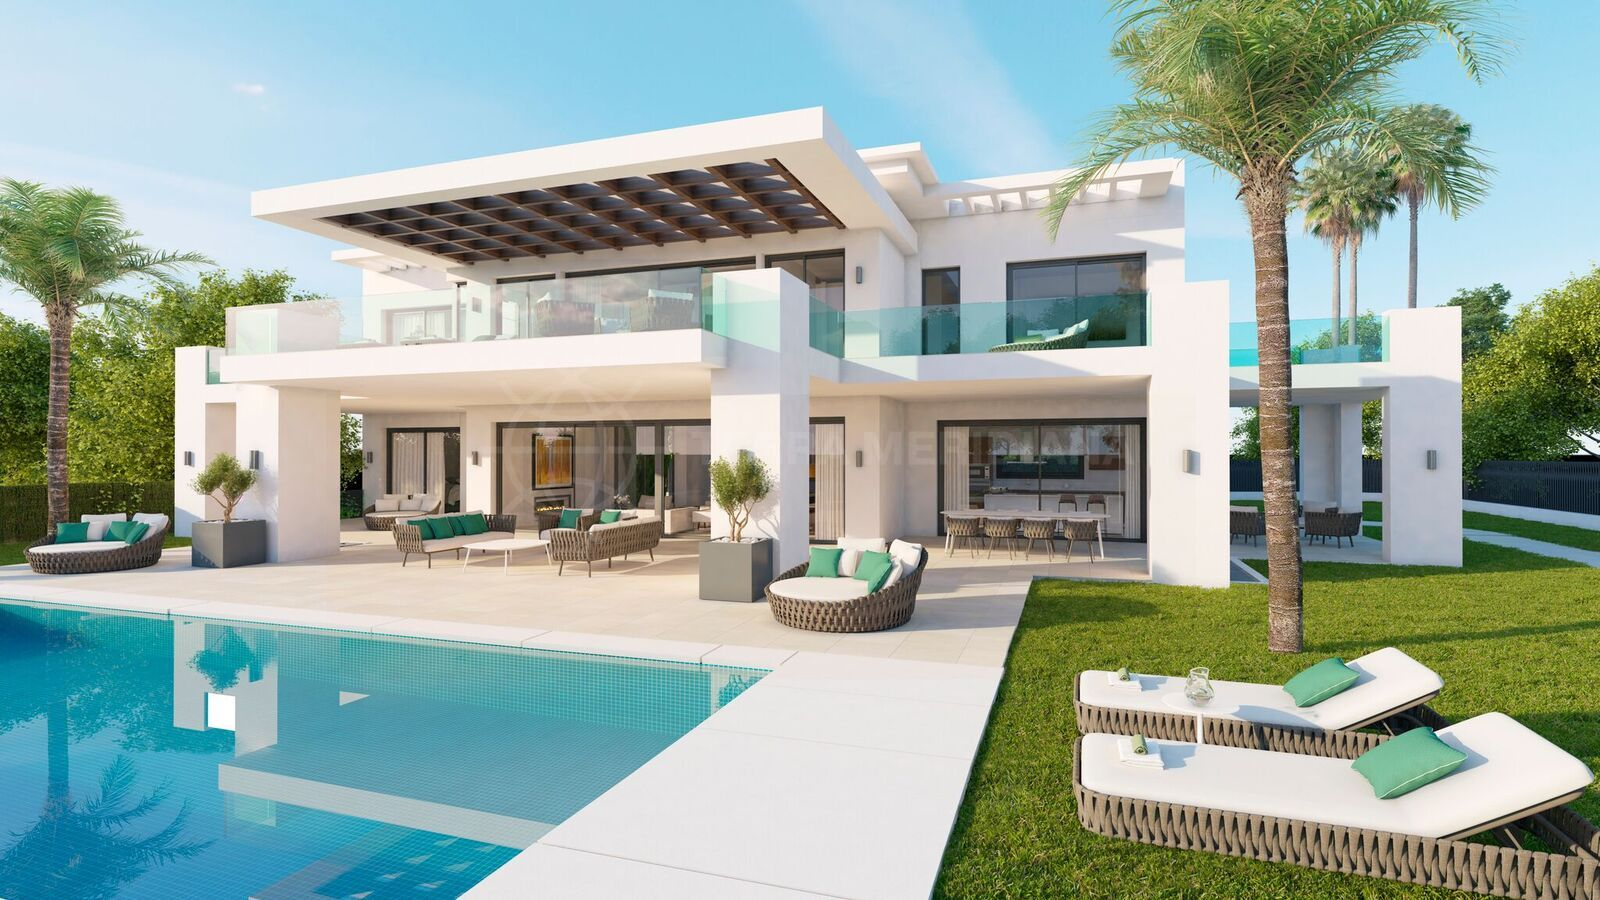 New Build Contemporary Villa For Sale With Pool And